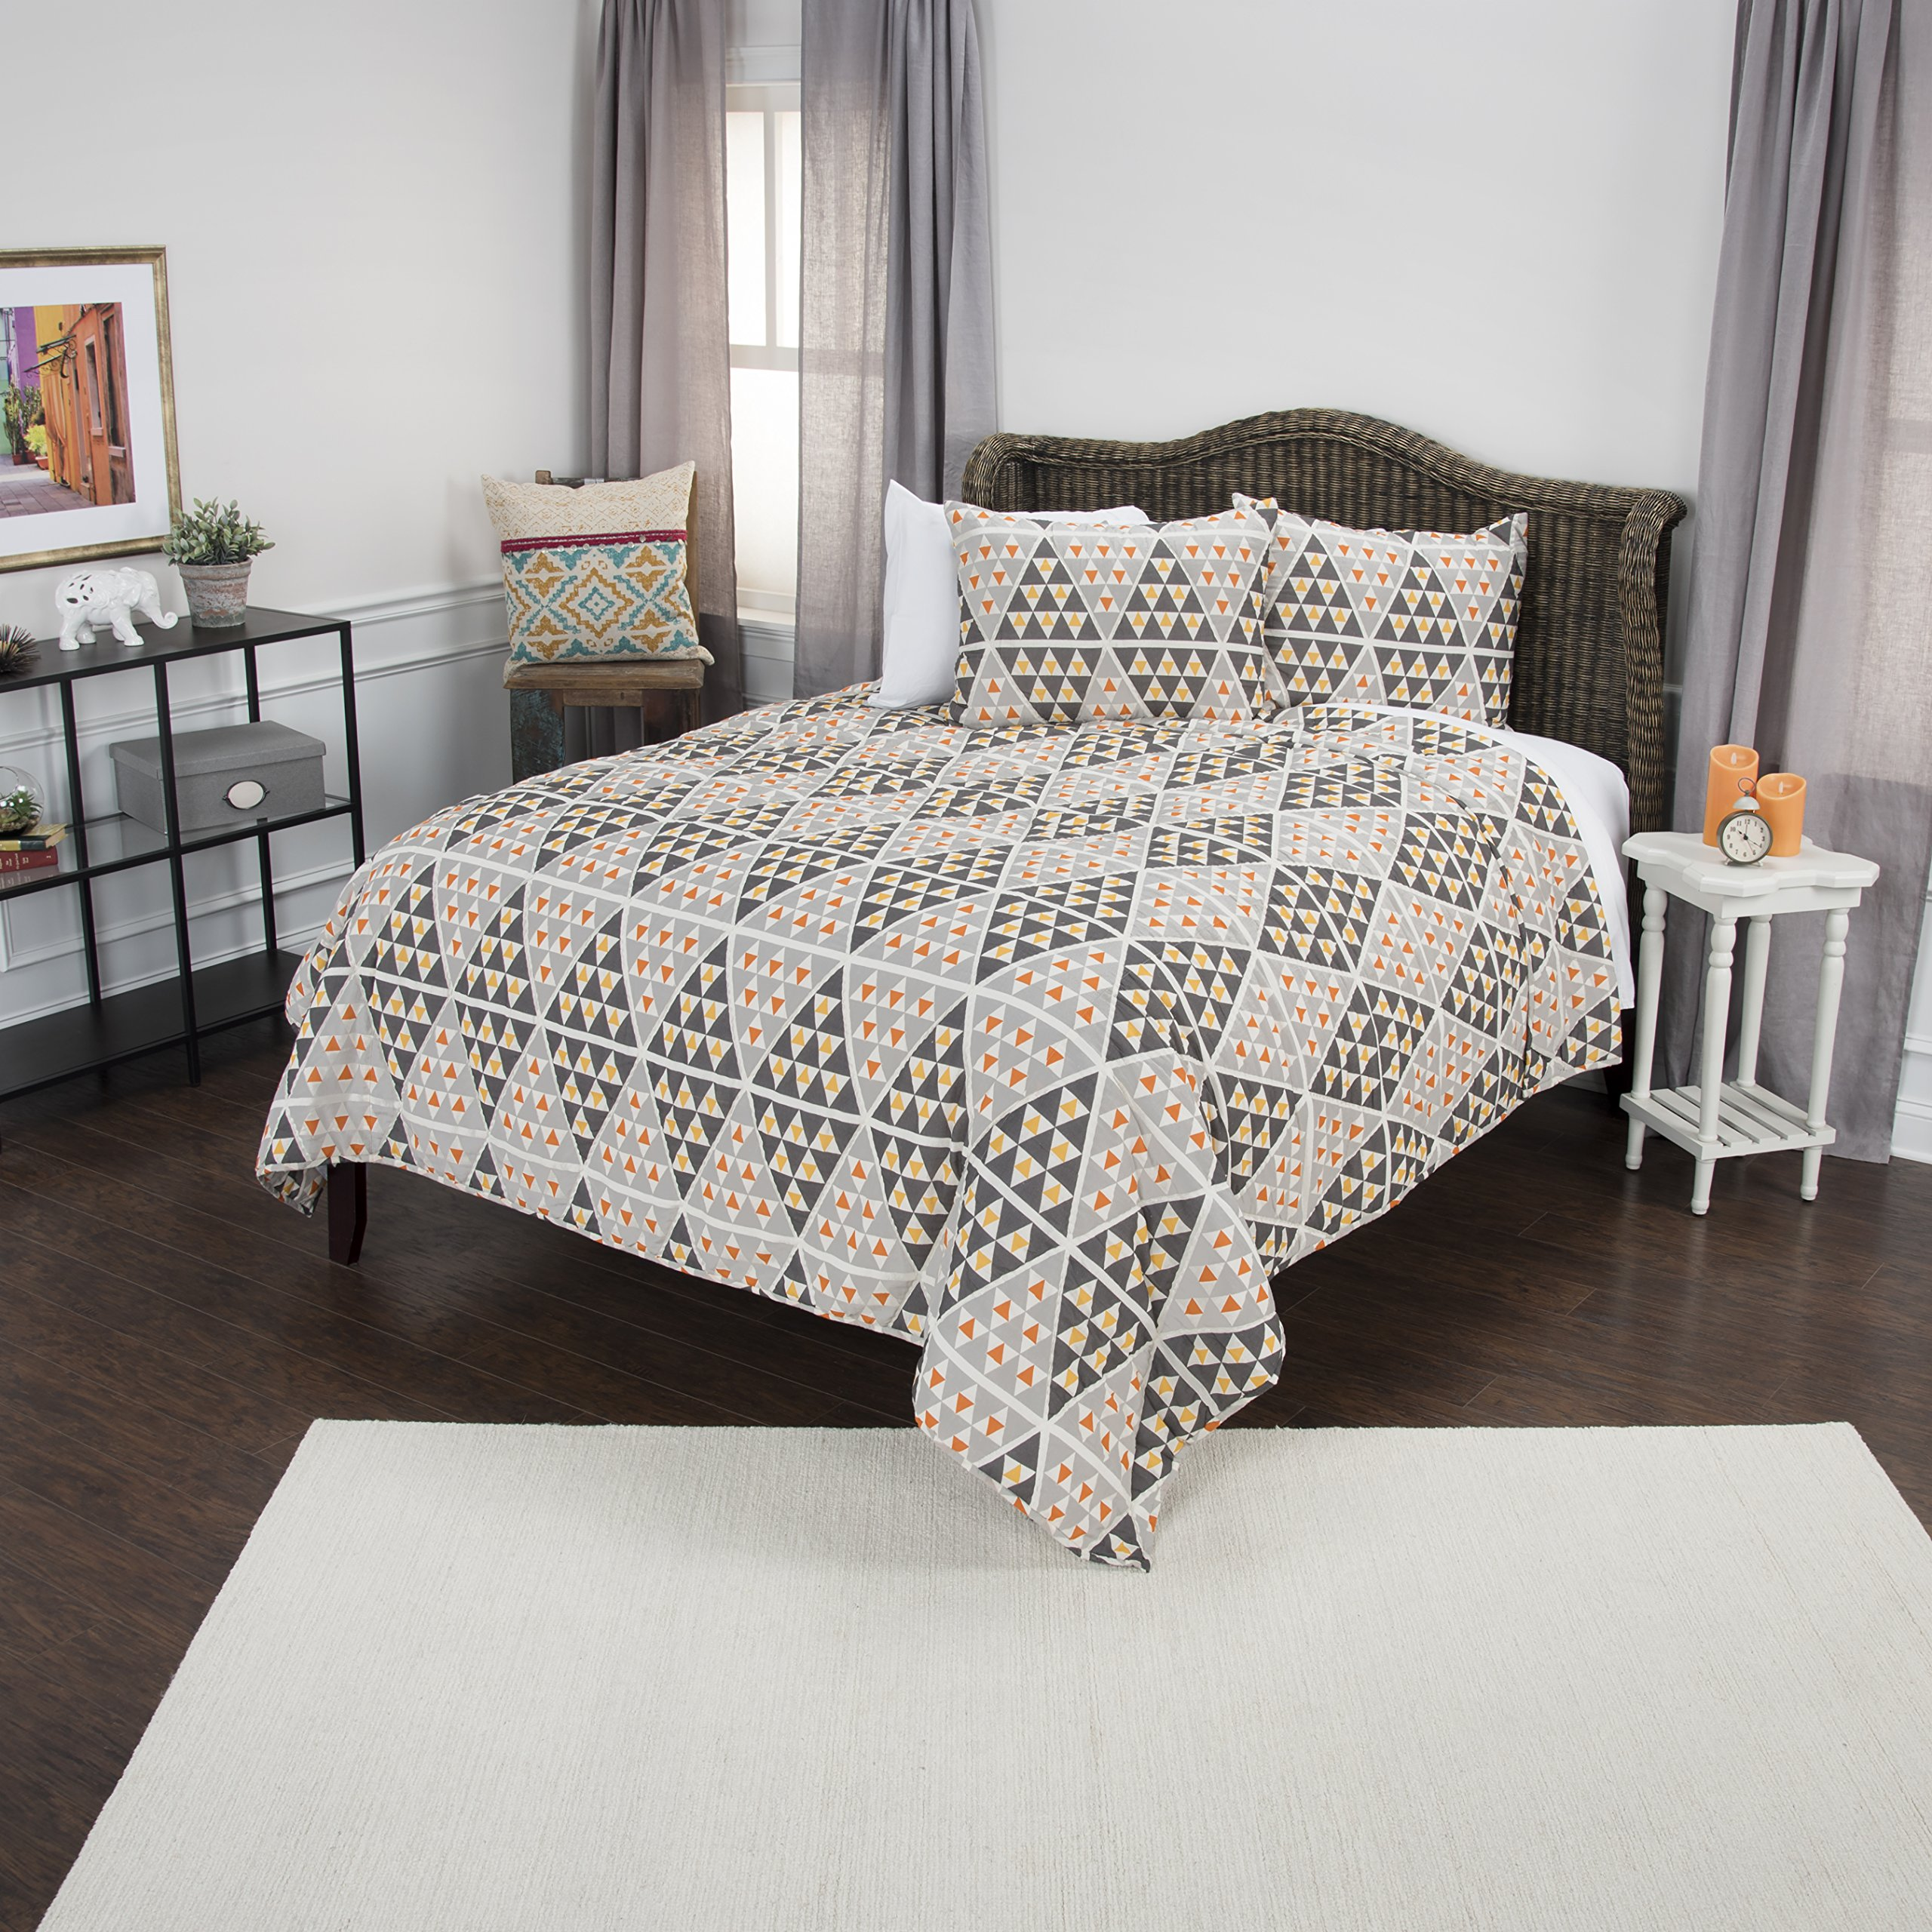 Rizzy Home Maddux Place Tommy Geometric 2 Piece Quilt Set, Twin X-Large, Orange